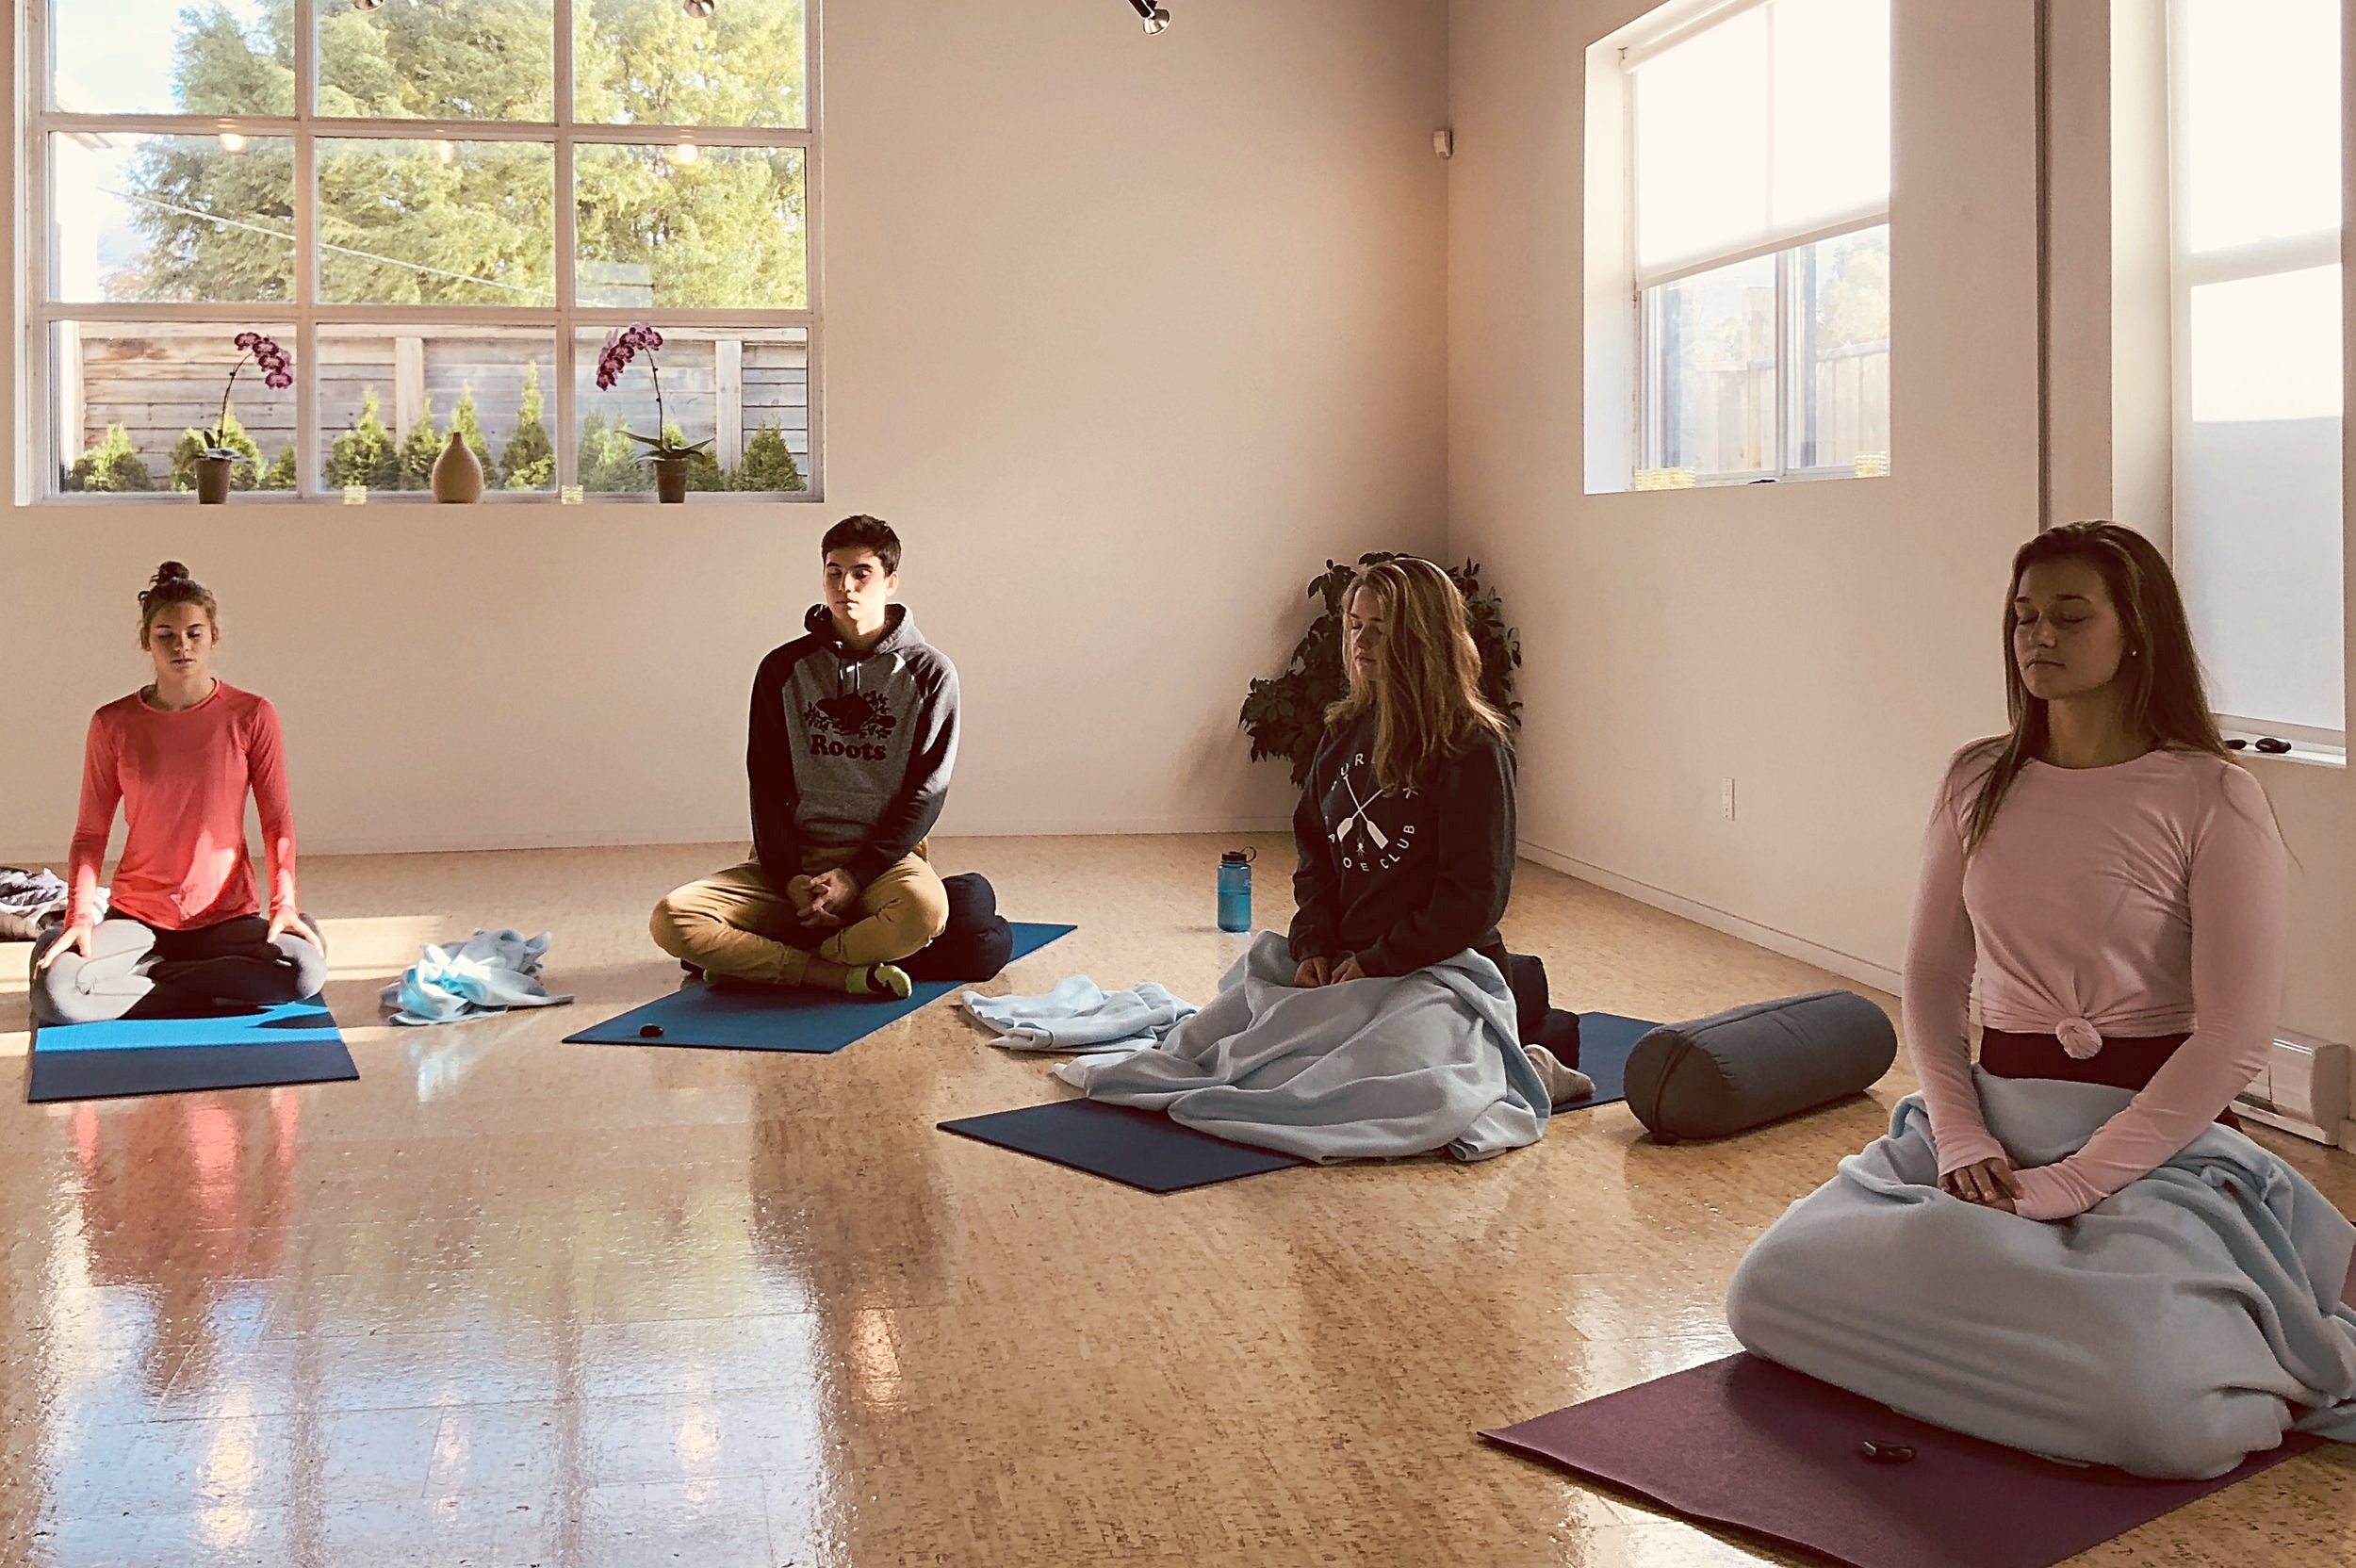 Teen Mindfulness Based Stress Reduction - Where we learn to cope better with life challenges.